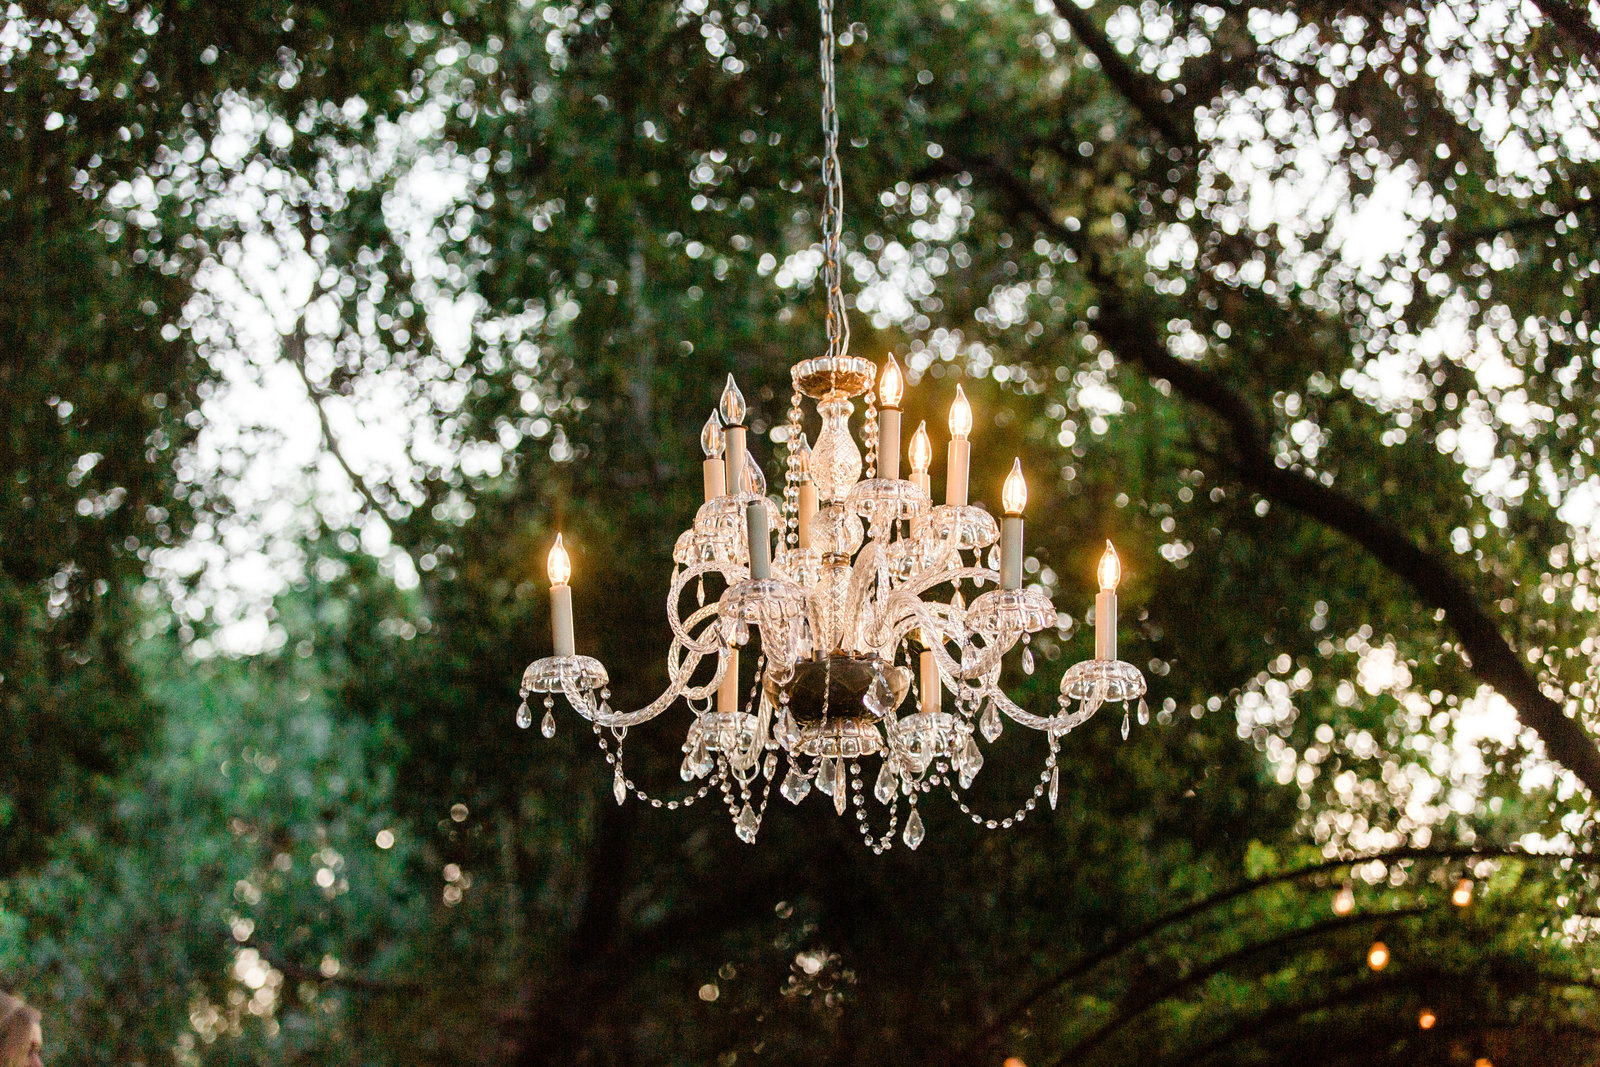 Calamigos-Ranch-Wedding-Chandelier